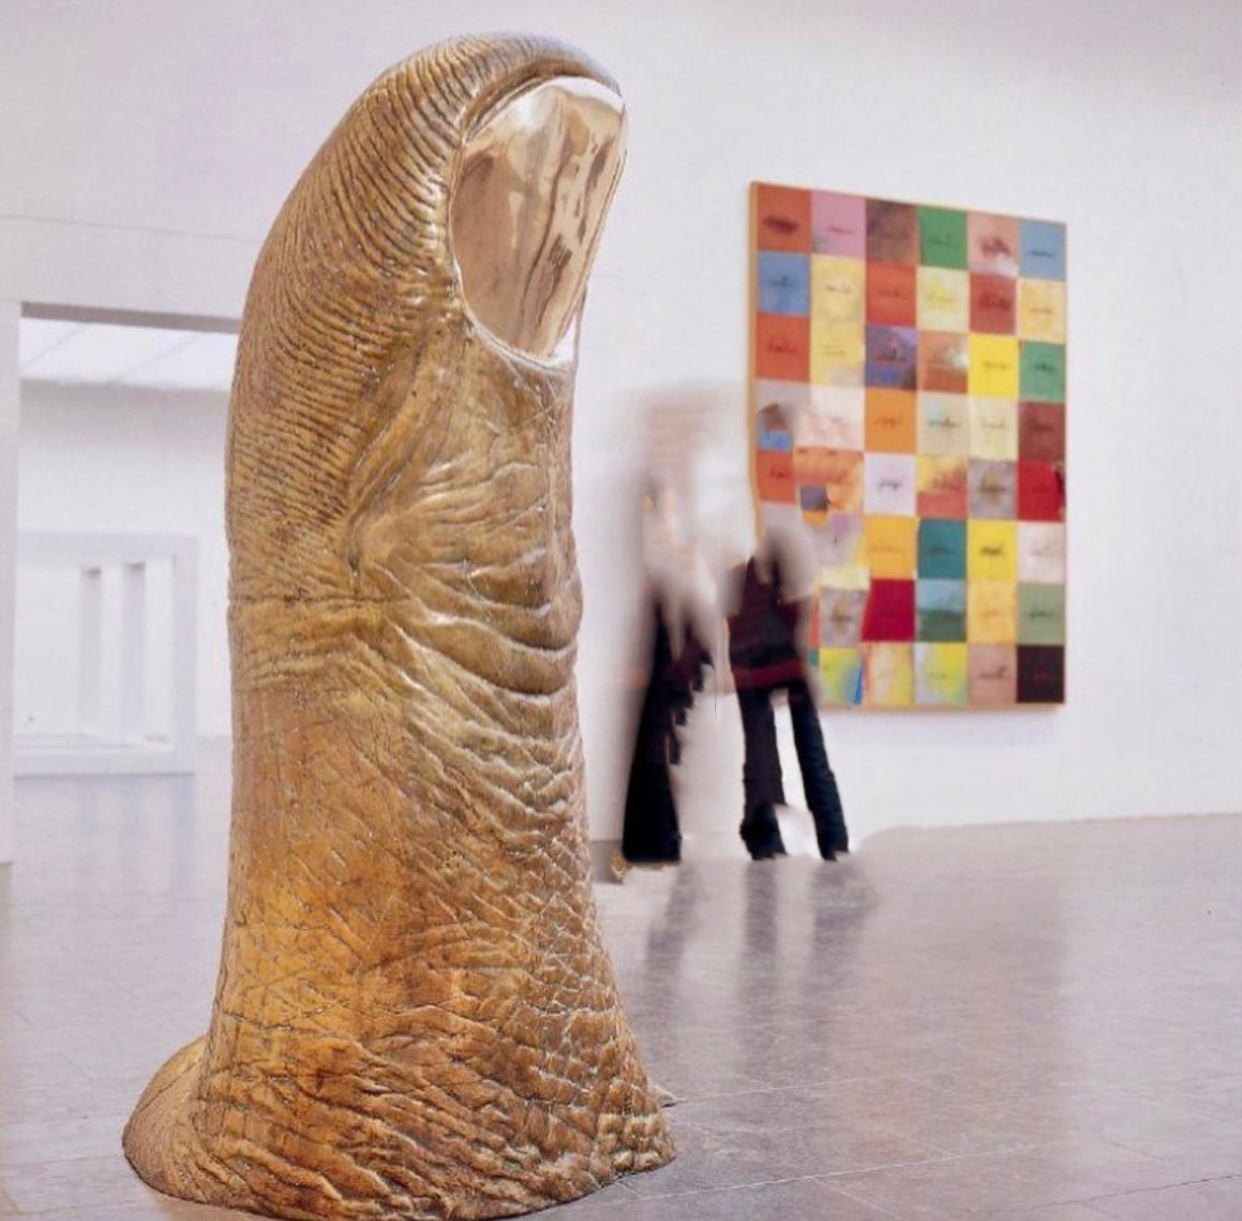 Bronze thumb sculpture